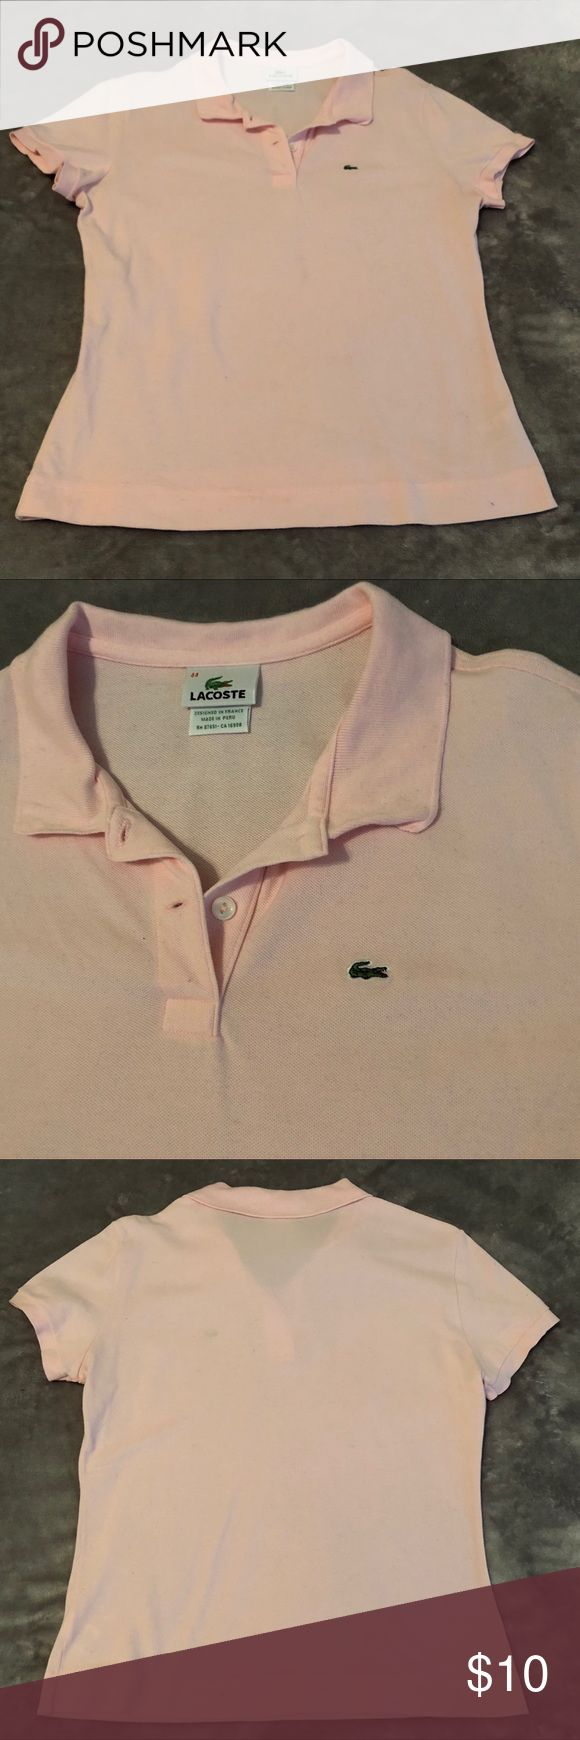 EUC Lacoste Polo (M) Pre-loved and in excellent condition, this Lacoste pale pink polo is ready for your closet!  Size - 44 (Lacoste website translates this to size 12 but I generally wear mediums, size 8-10 most comfortably, and think this fits right in that range)  Offers welcome! Lacoste Tops